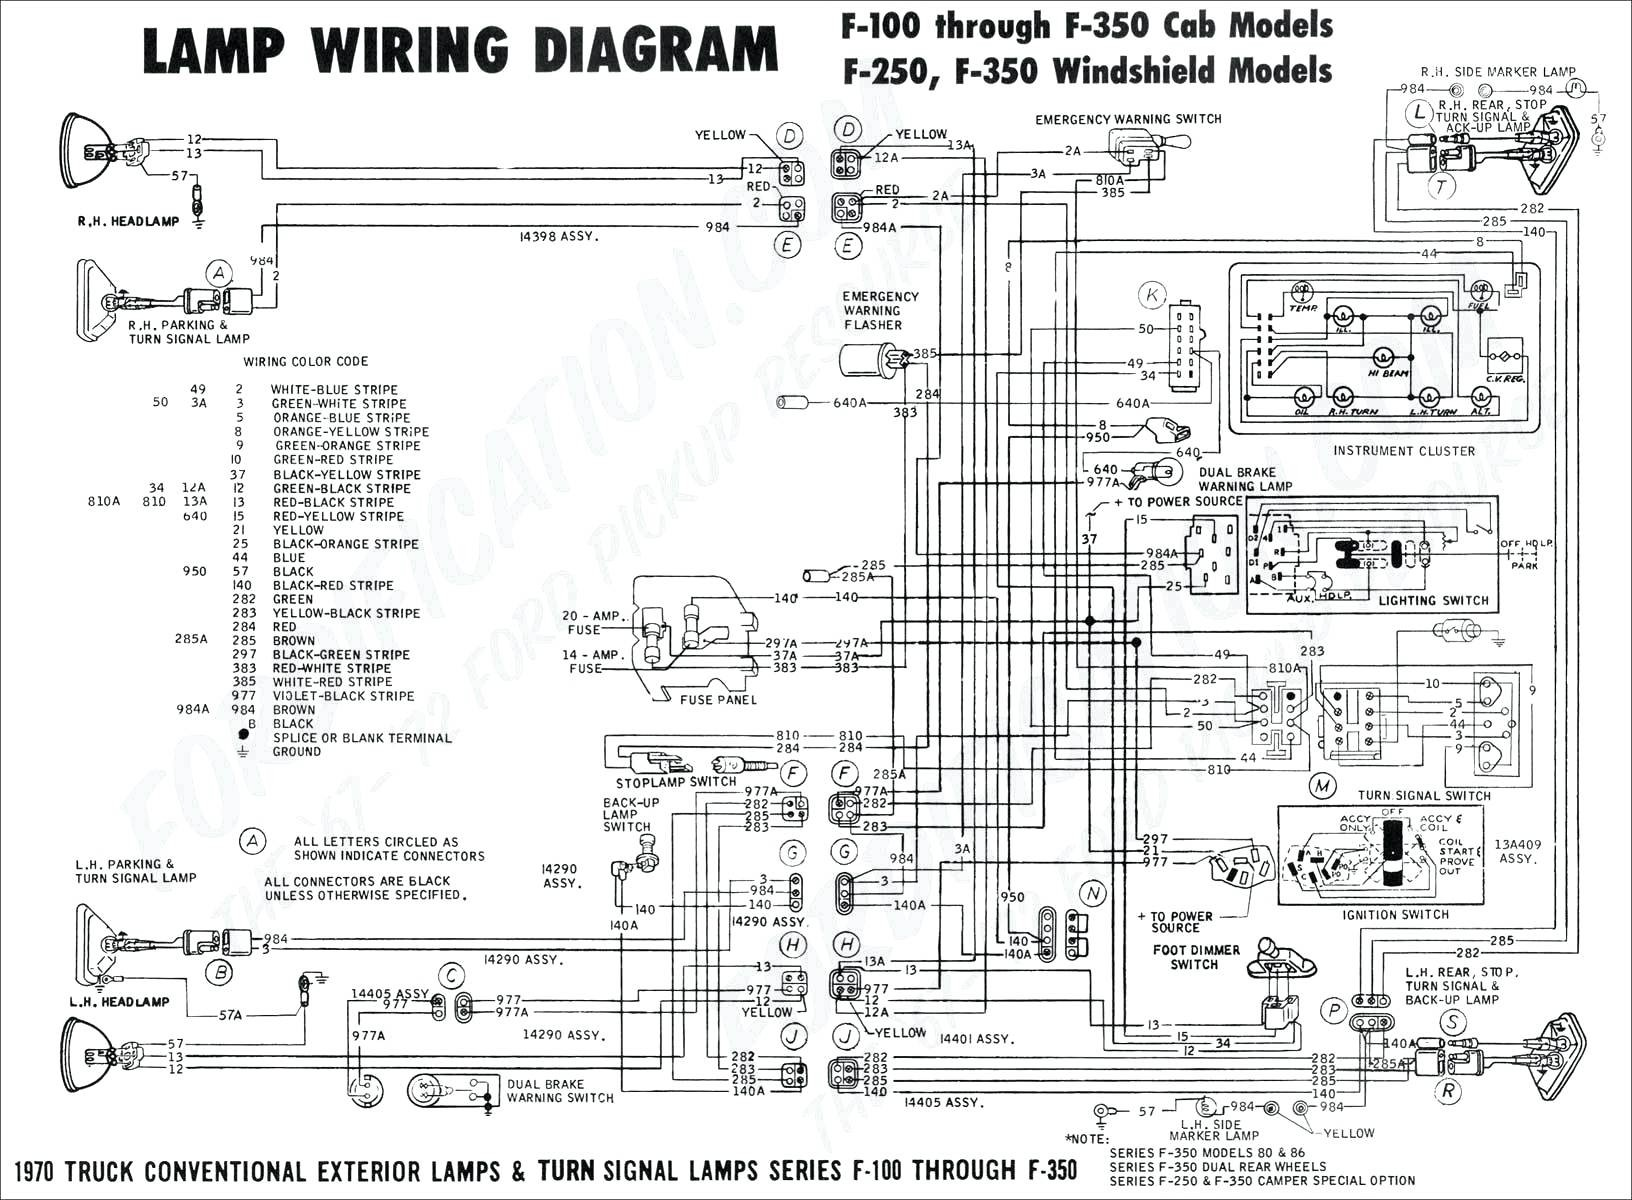 2006 Ford F350 Relay Diagram Electrical Wiring Diagrams For Toyota Corolla Engine Enthusiast U2022